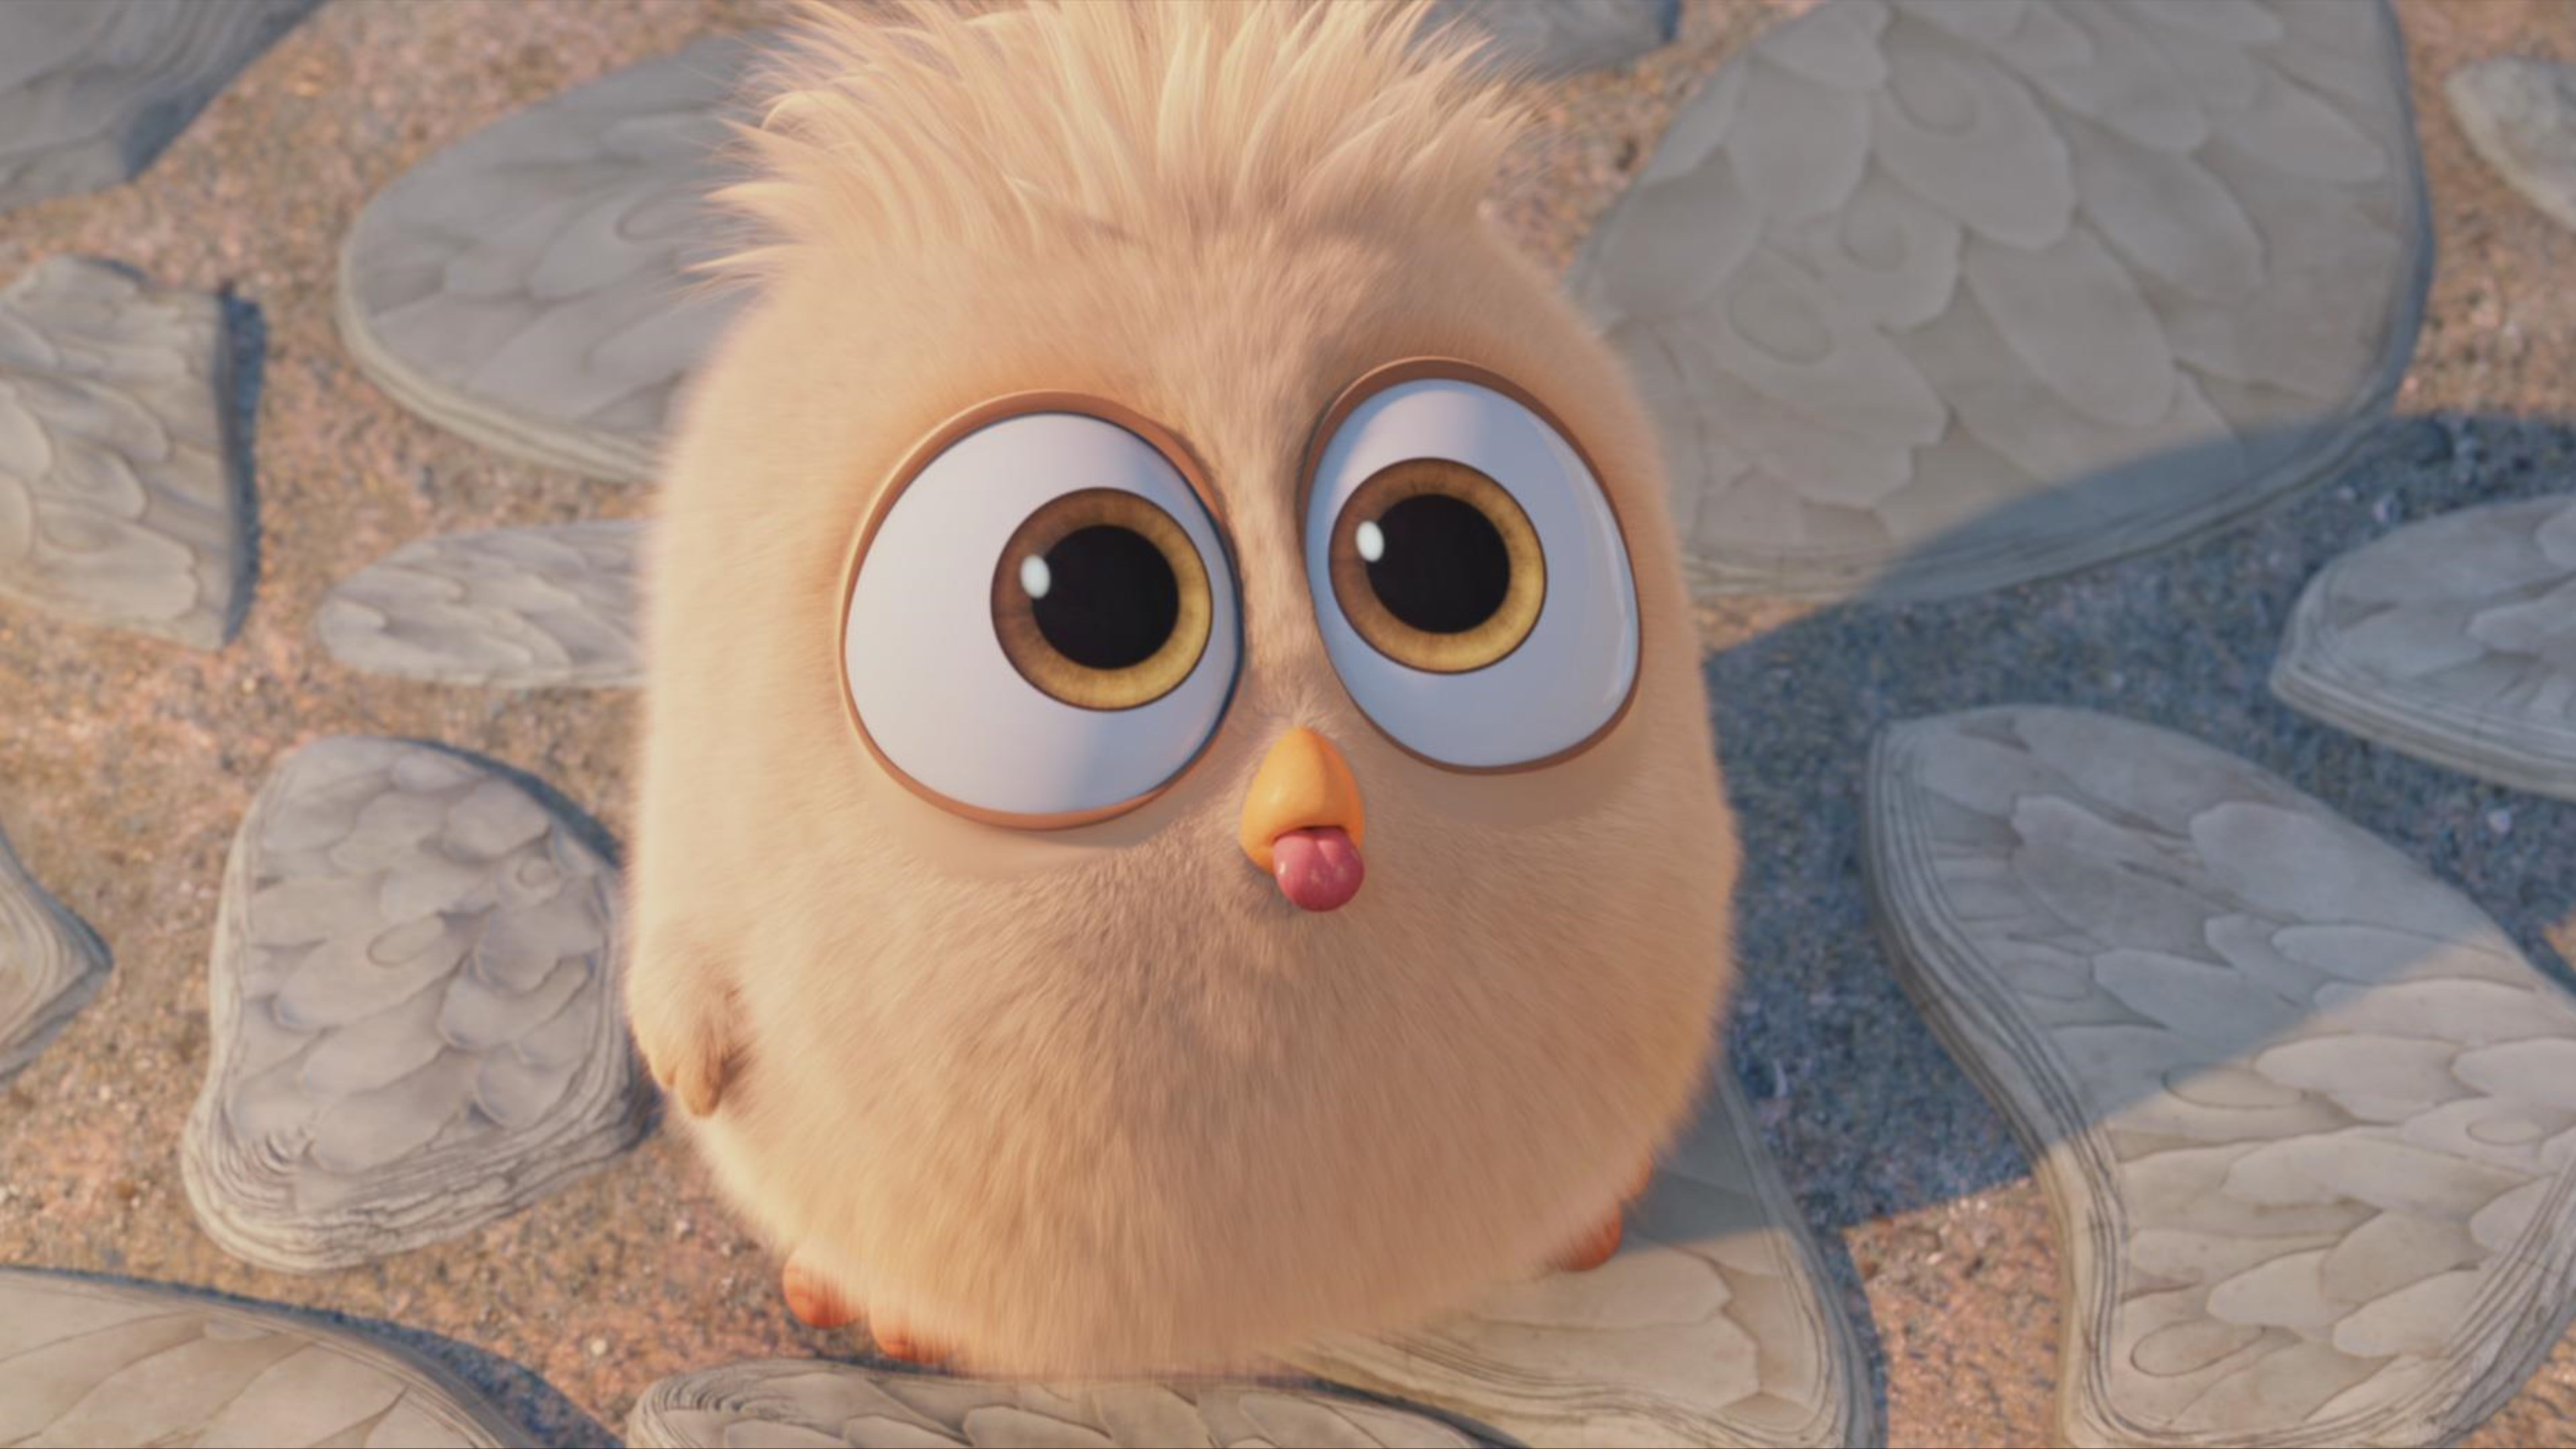 Hatchling In The Angry Birds Movie - Animated Gif Blowing Raspberry , HD Wallpaper & Backgrounds